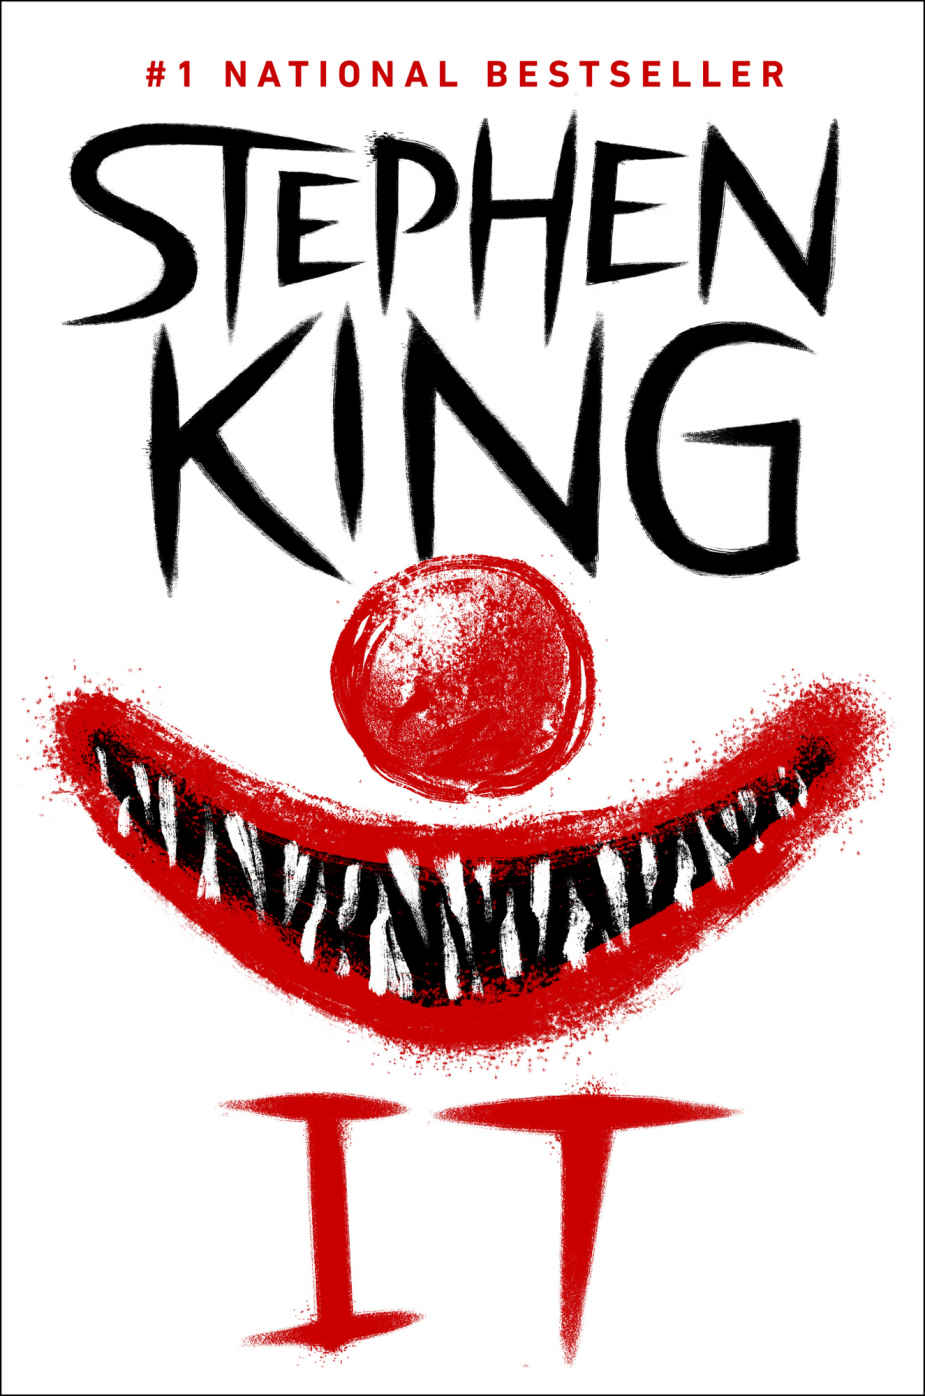 It: A Novel - Stephen King [kindle] [mobi]